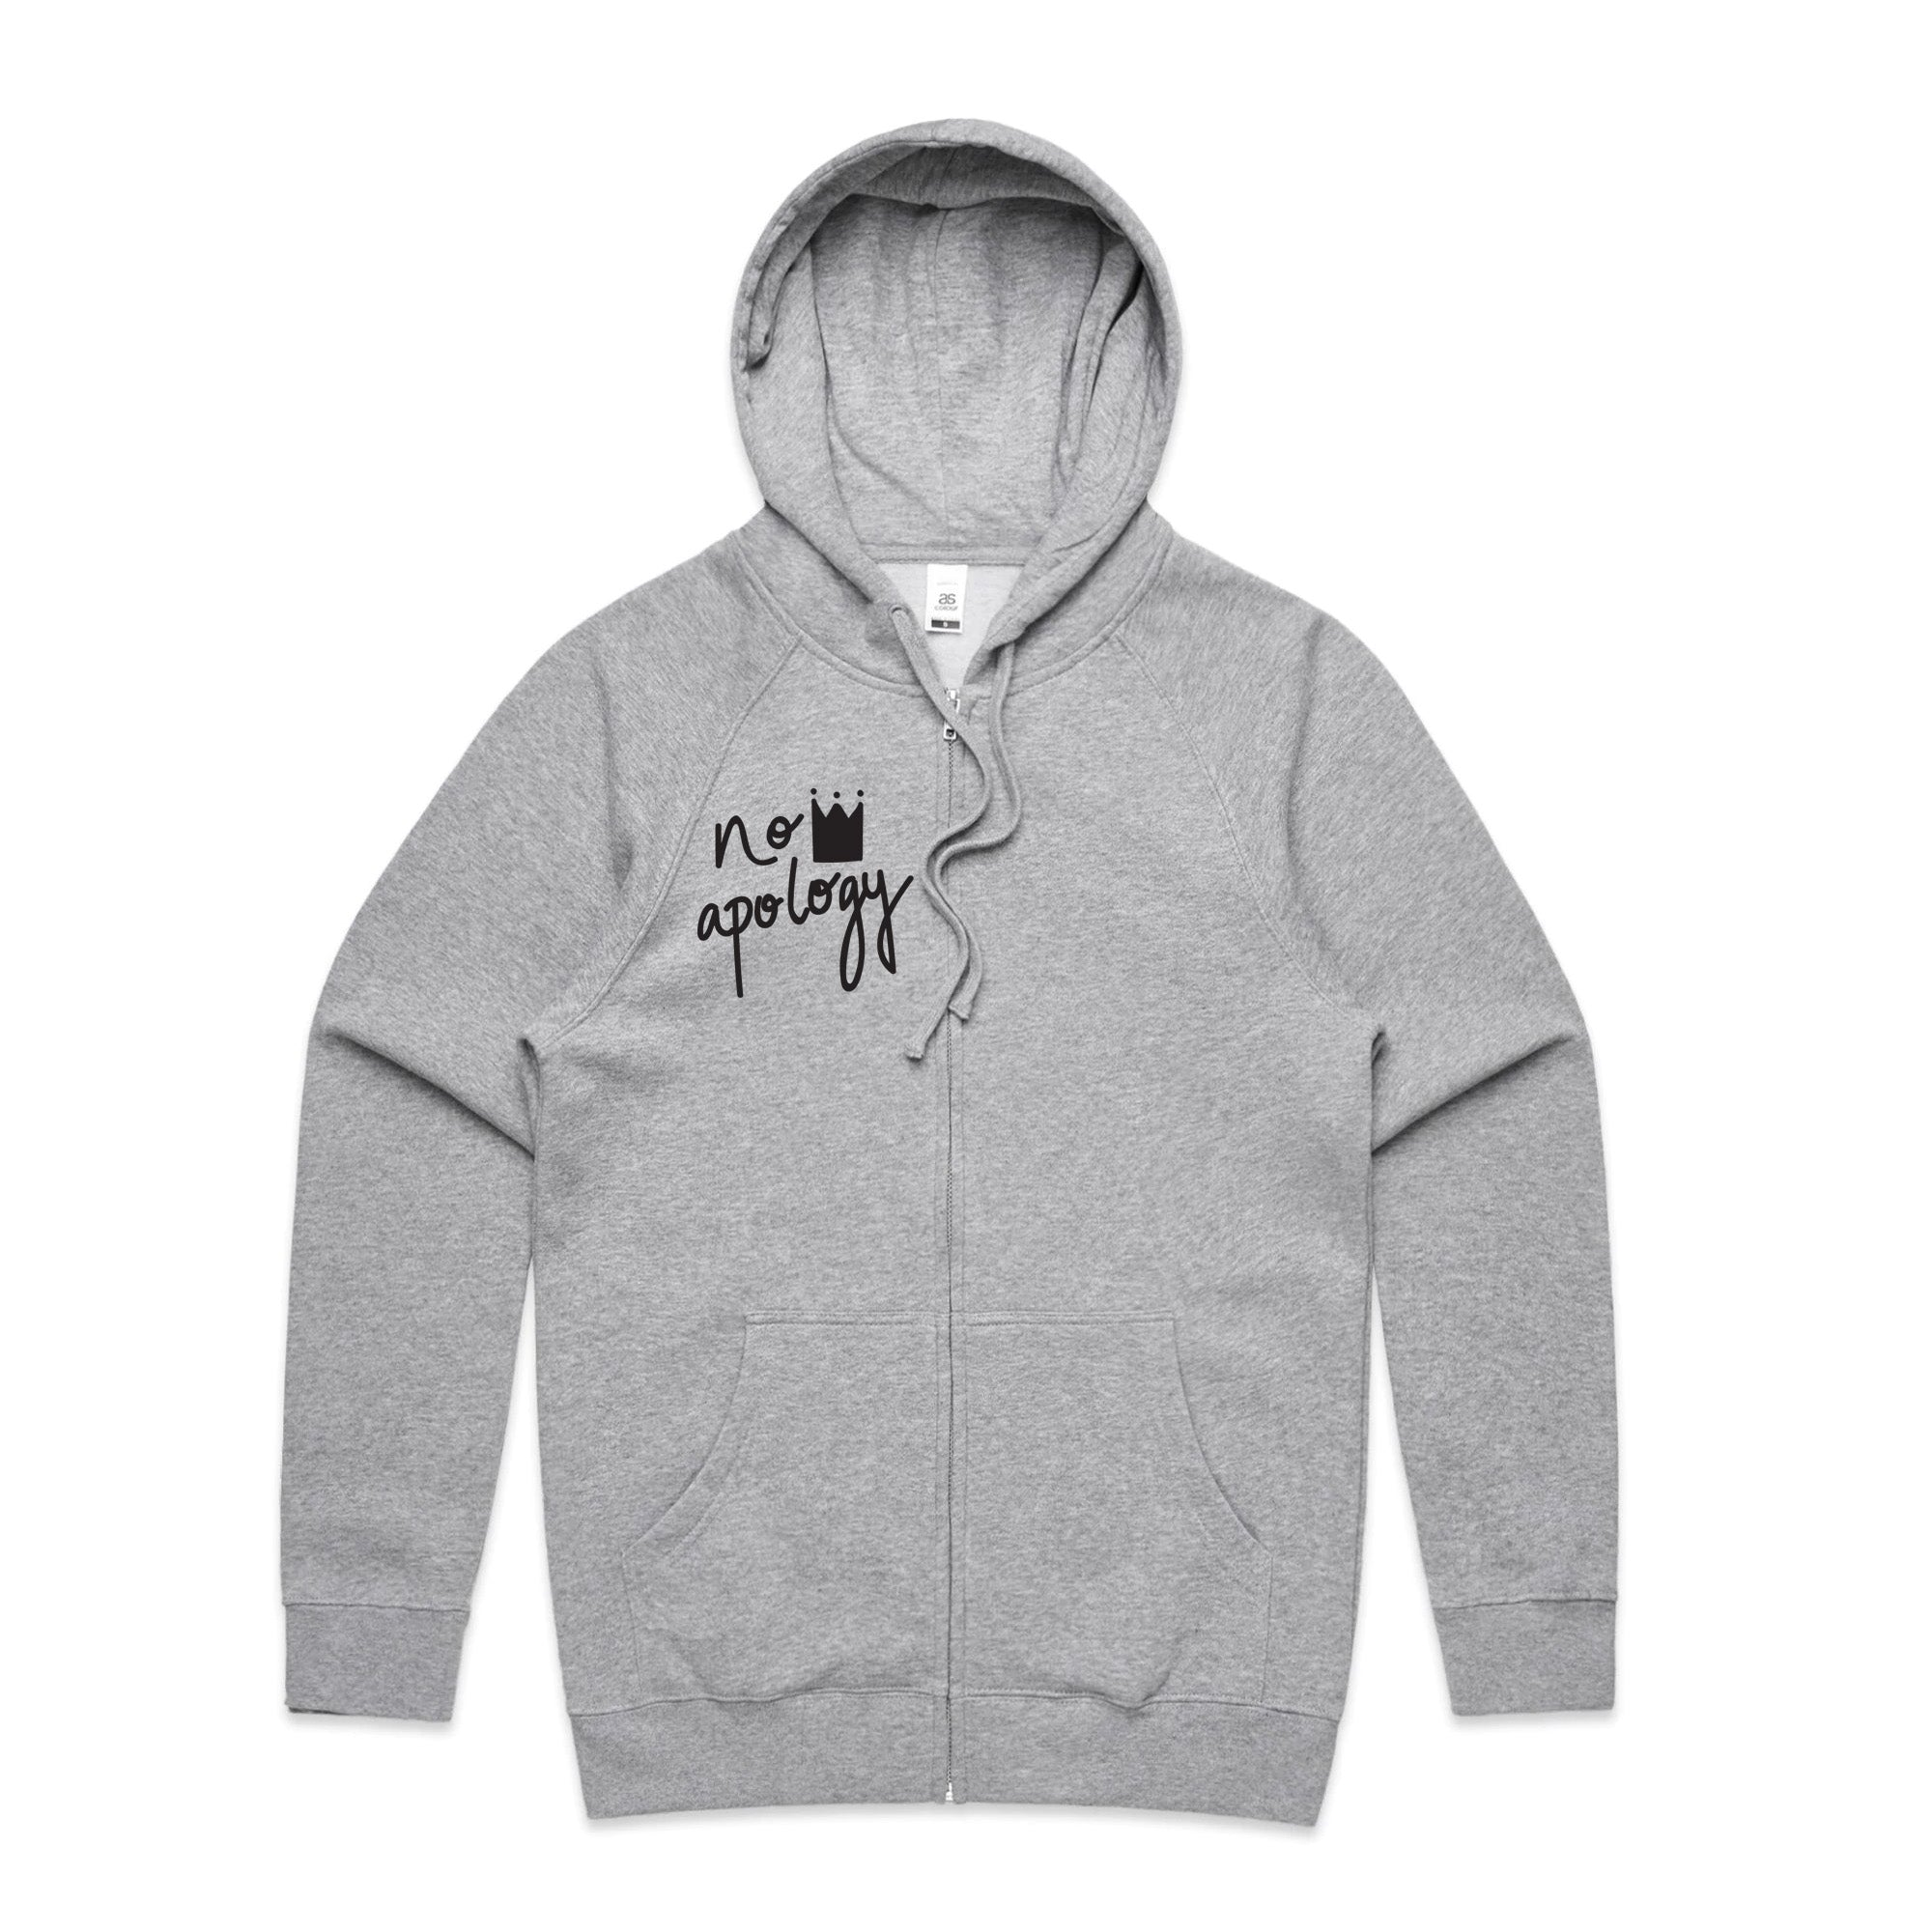 'Just Me Being Me' Zip Up Hoodie